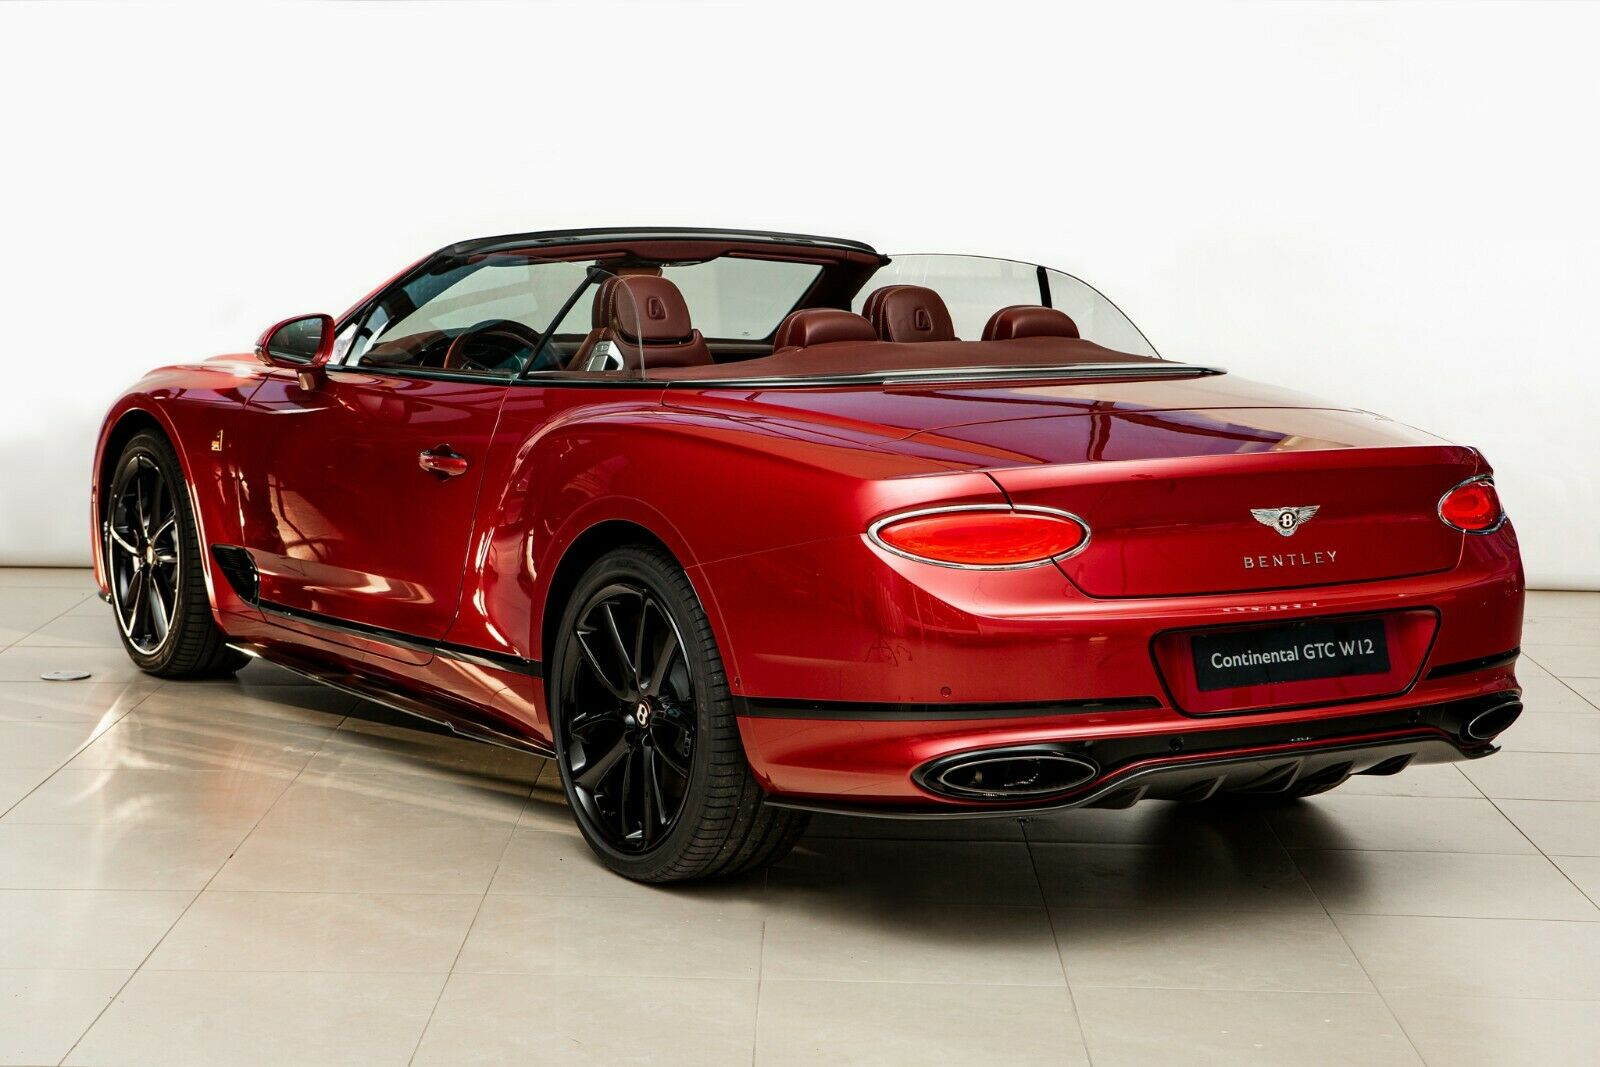 Bentley Continental Gtc Number 1 By Mulliner 1 Of 100 Luxury Sports Cars Se Latvia For Sale On Luxurypulse